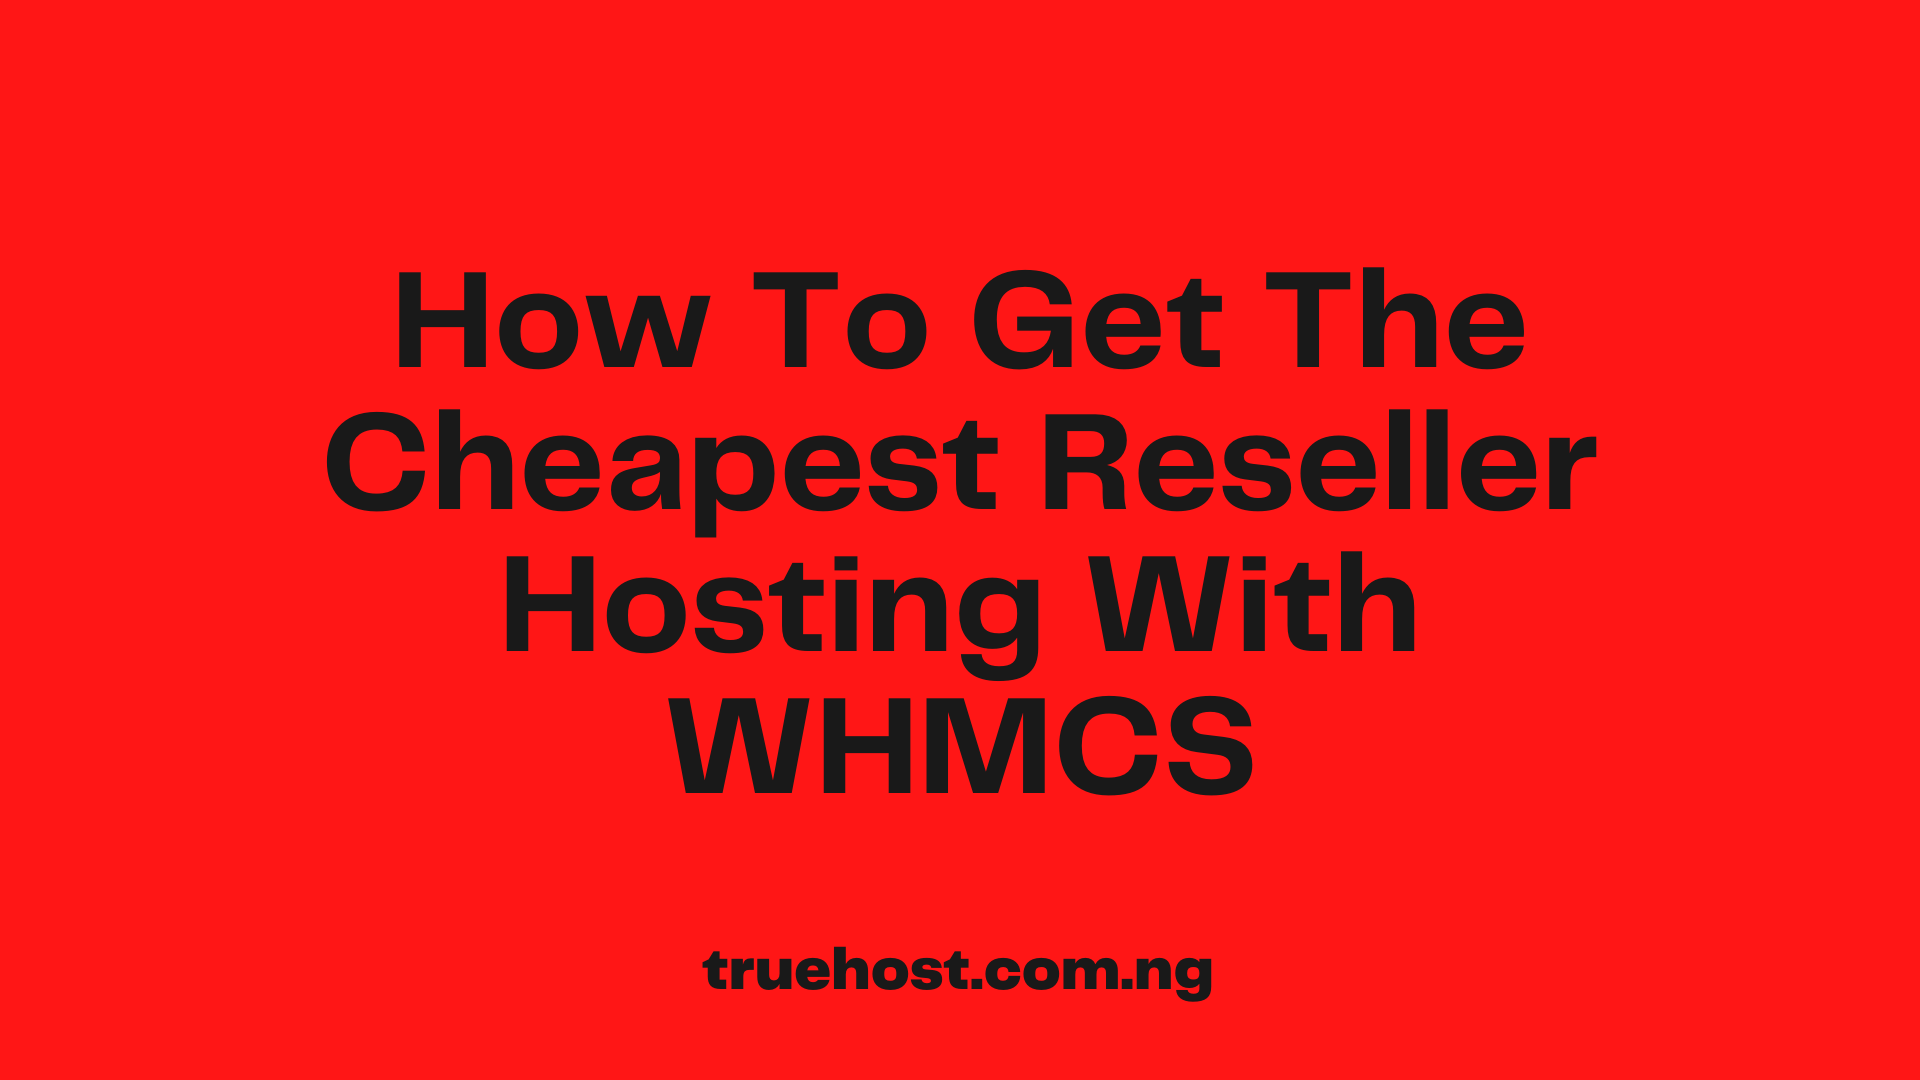 cheapest reseller hosting with WHMCS